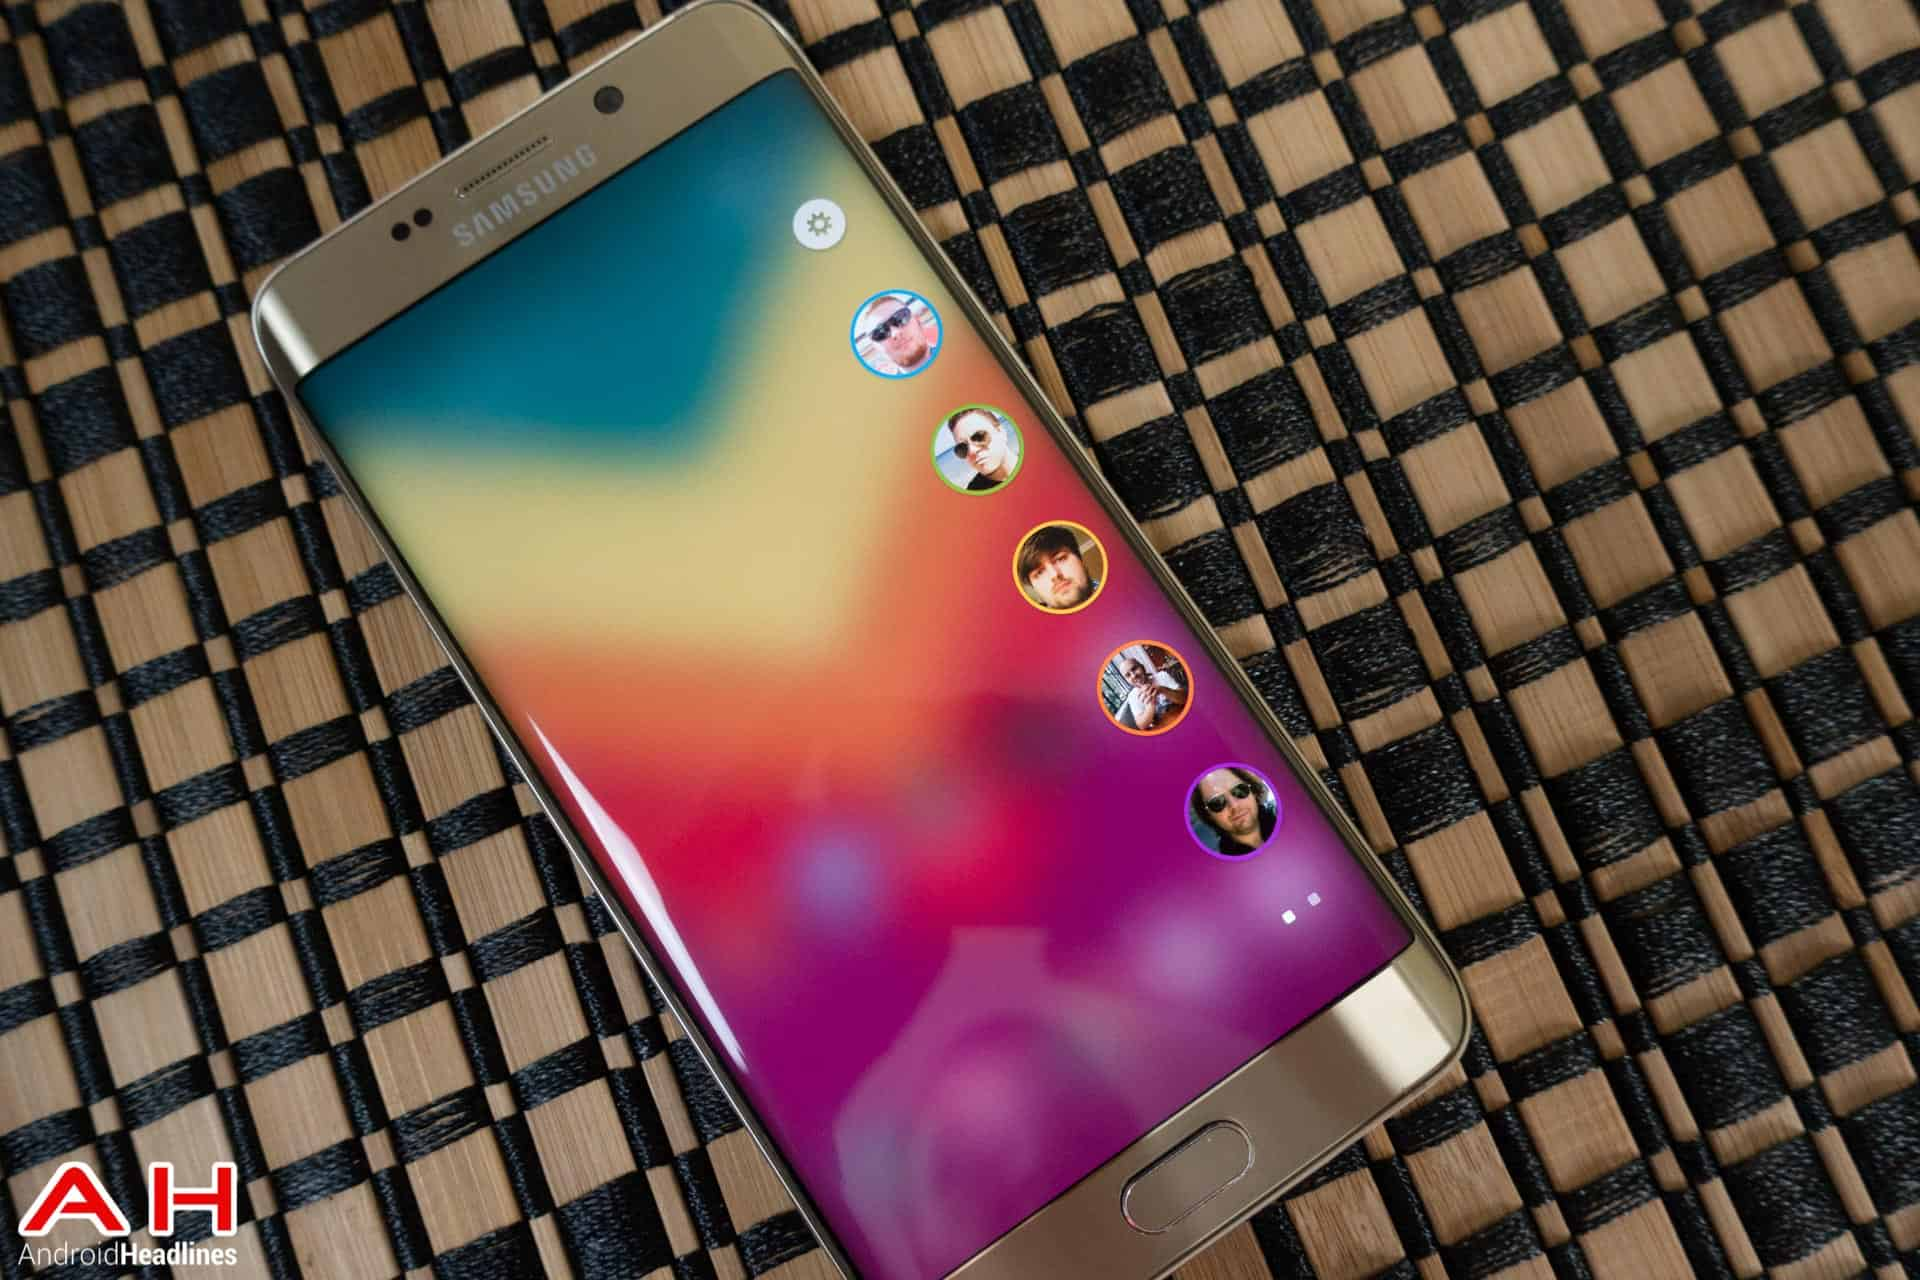 Galaxy-S6-Edge-Plus-Apps-Edge-AH-1